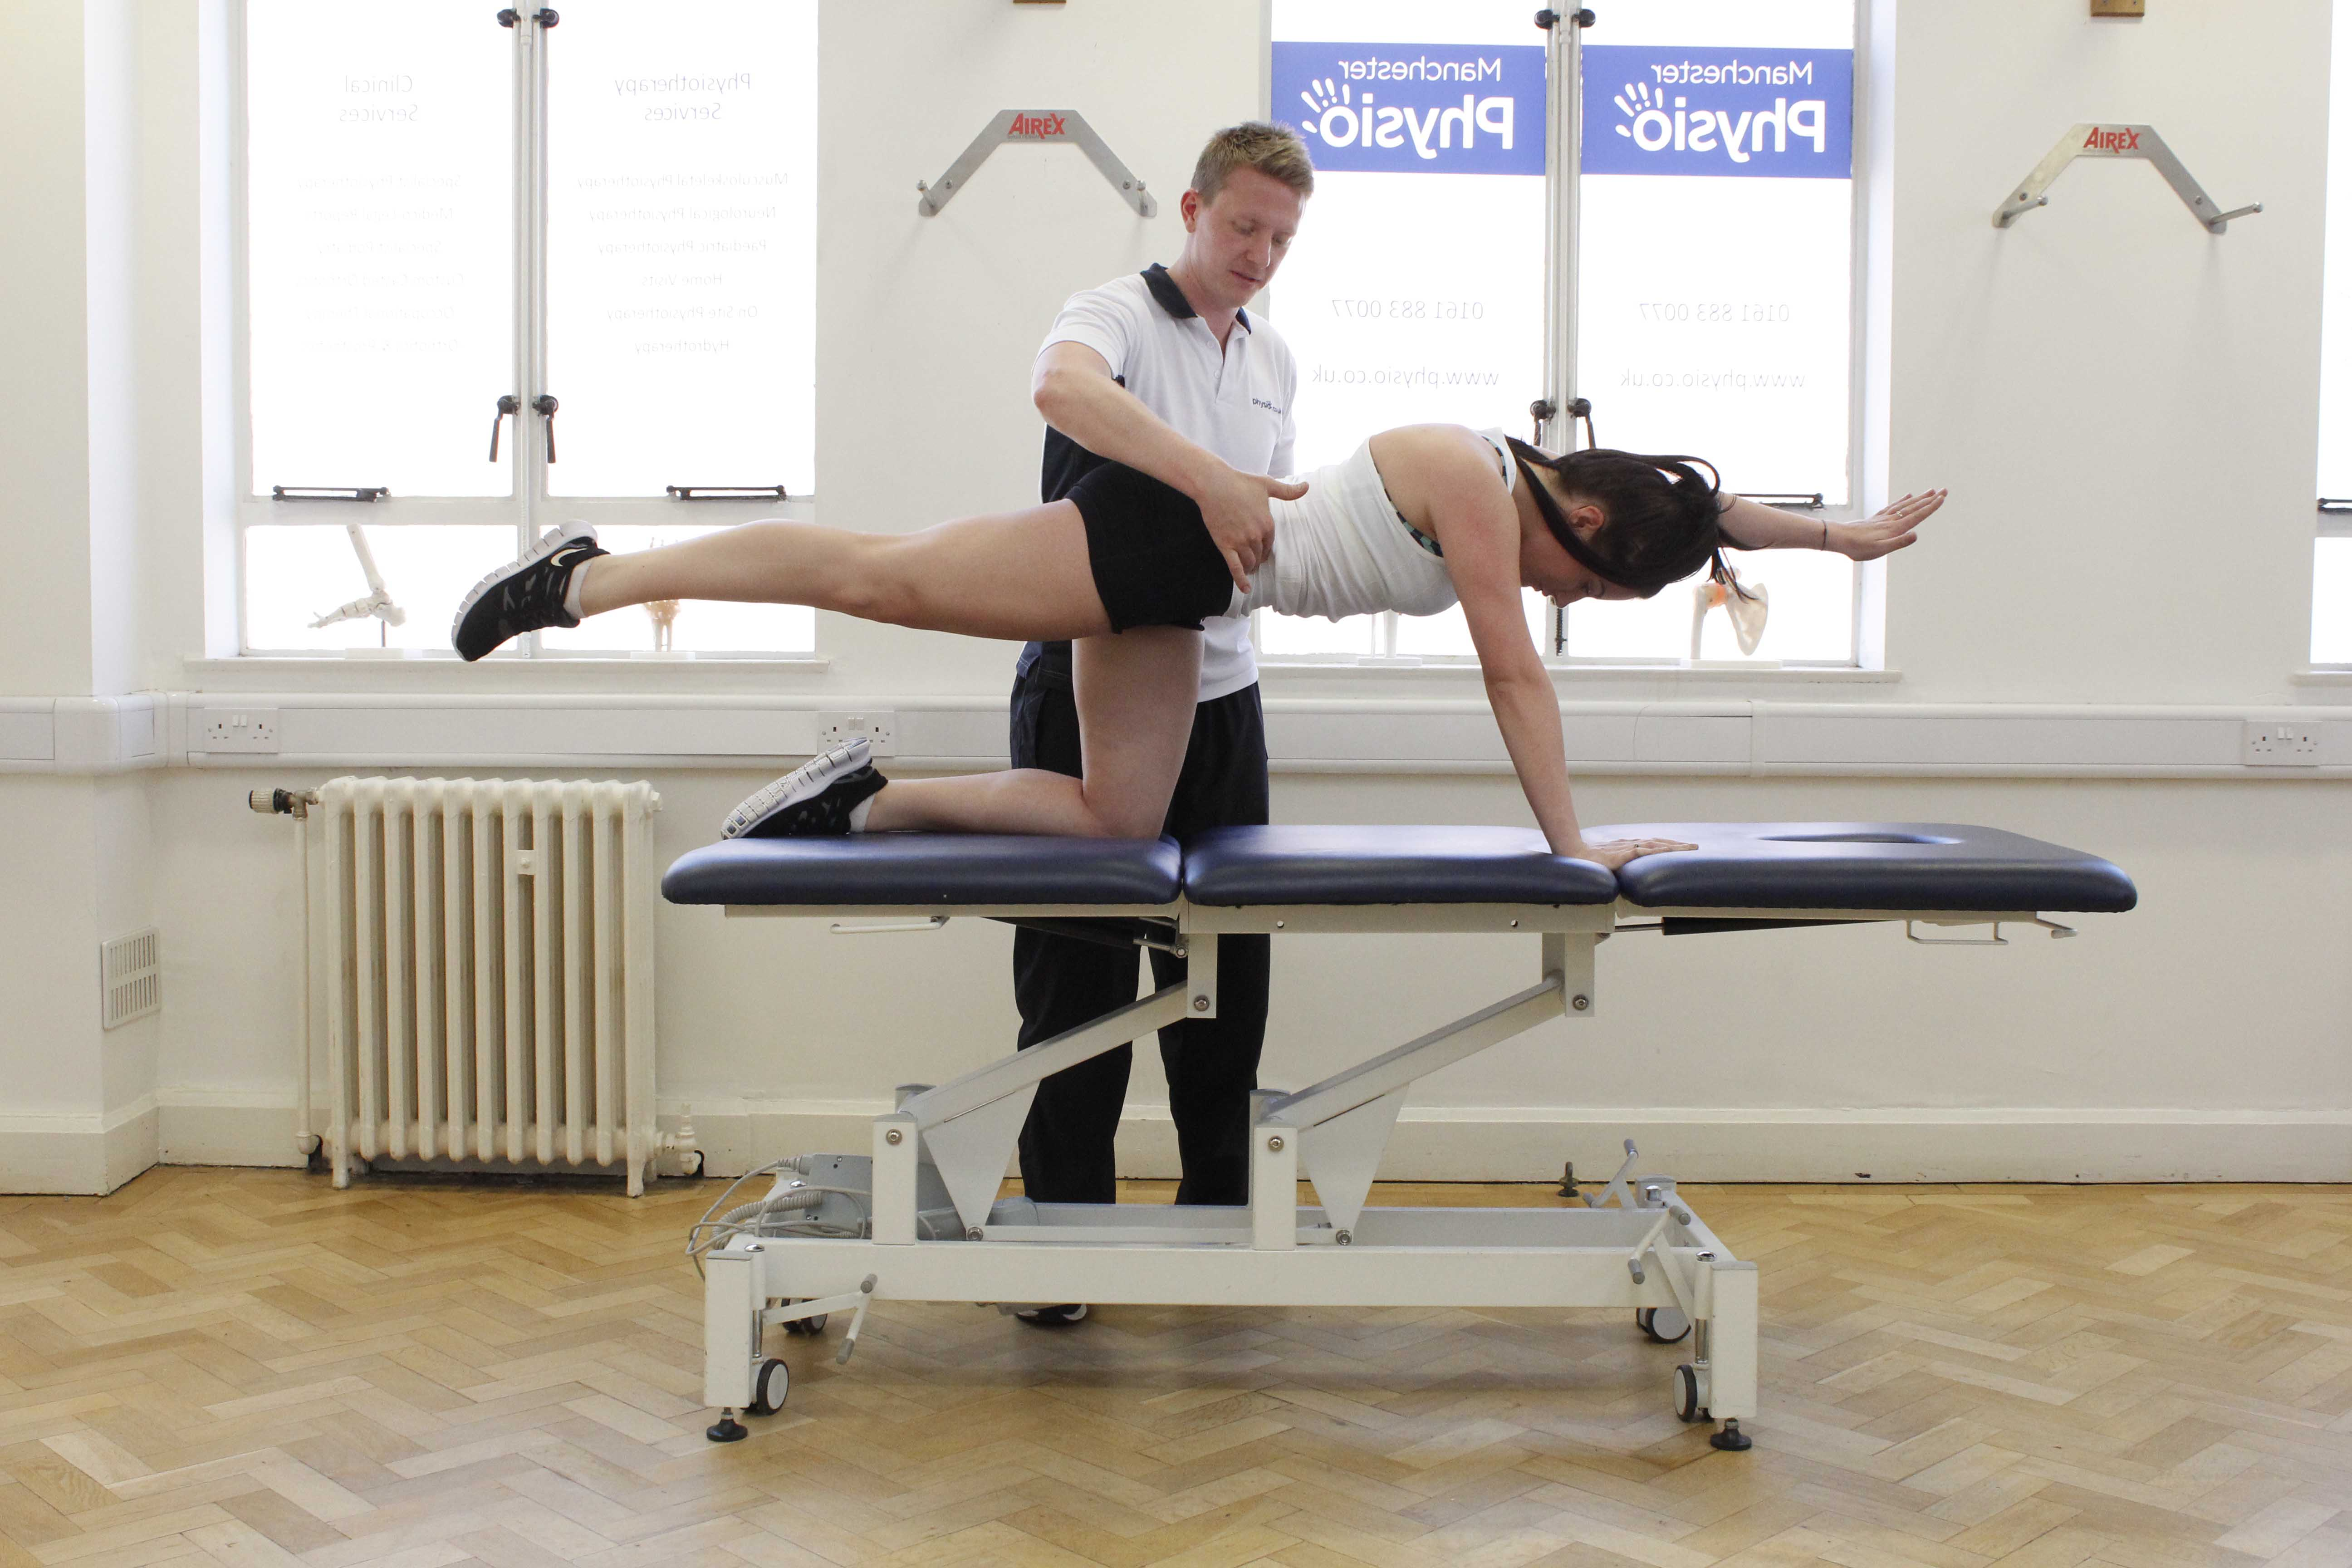 Lower back toning exercises performed on plinth